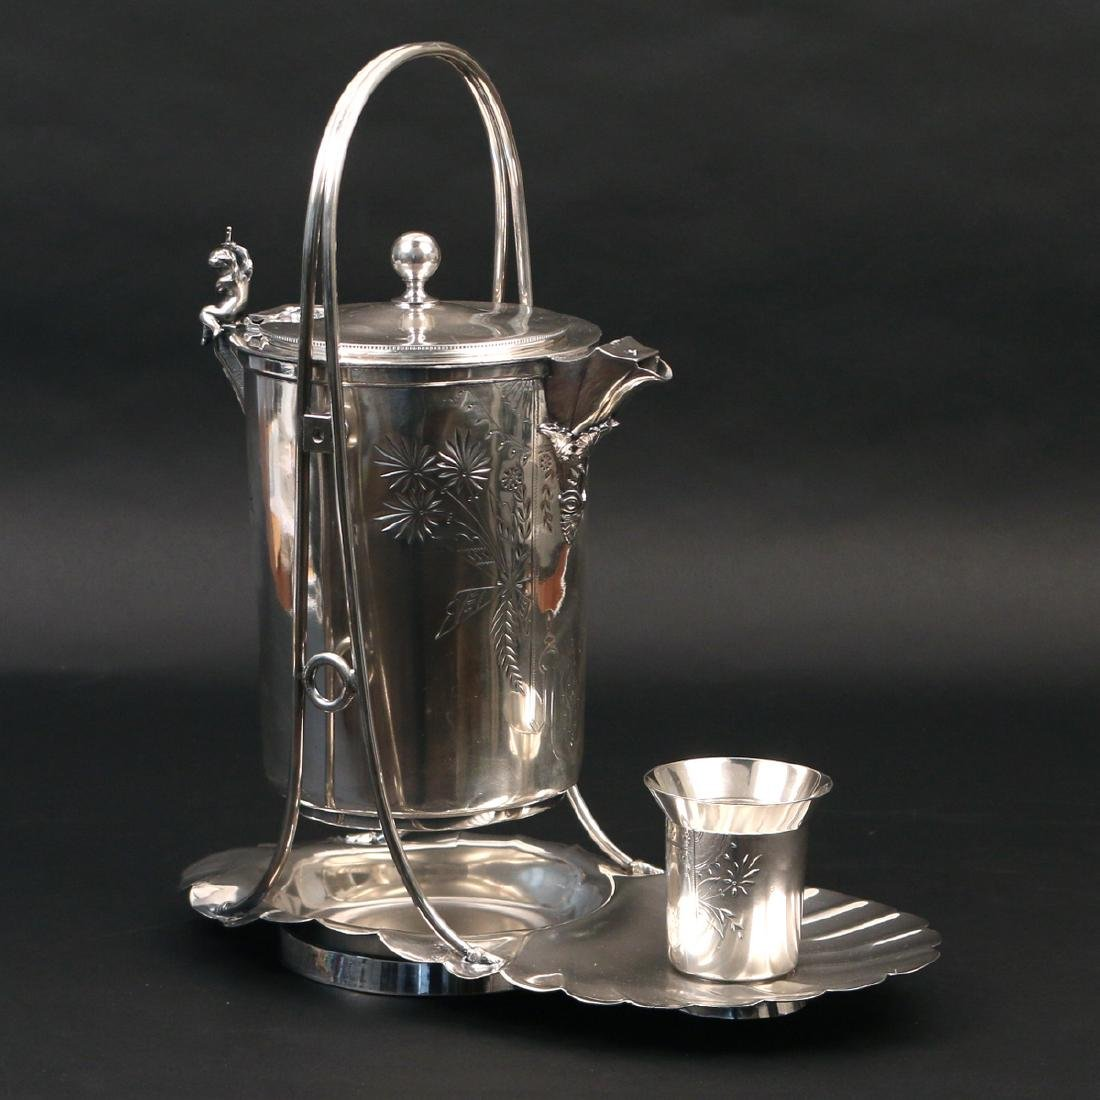 SILVER-PLATED PITCHER-ON-CRADLE